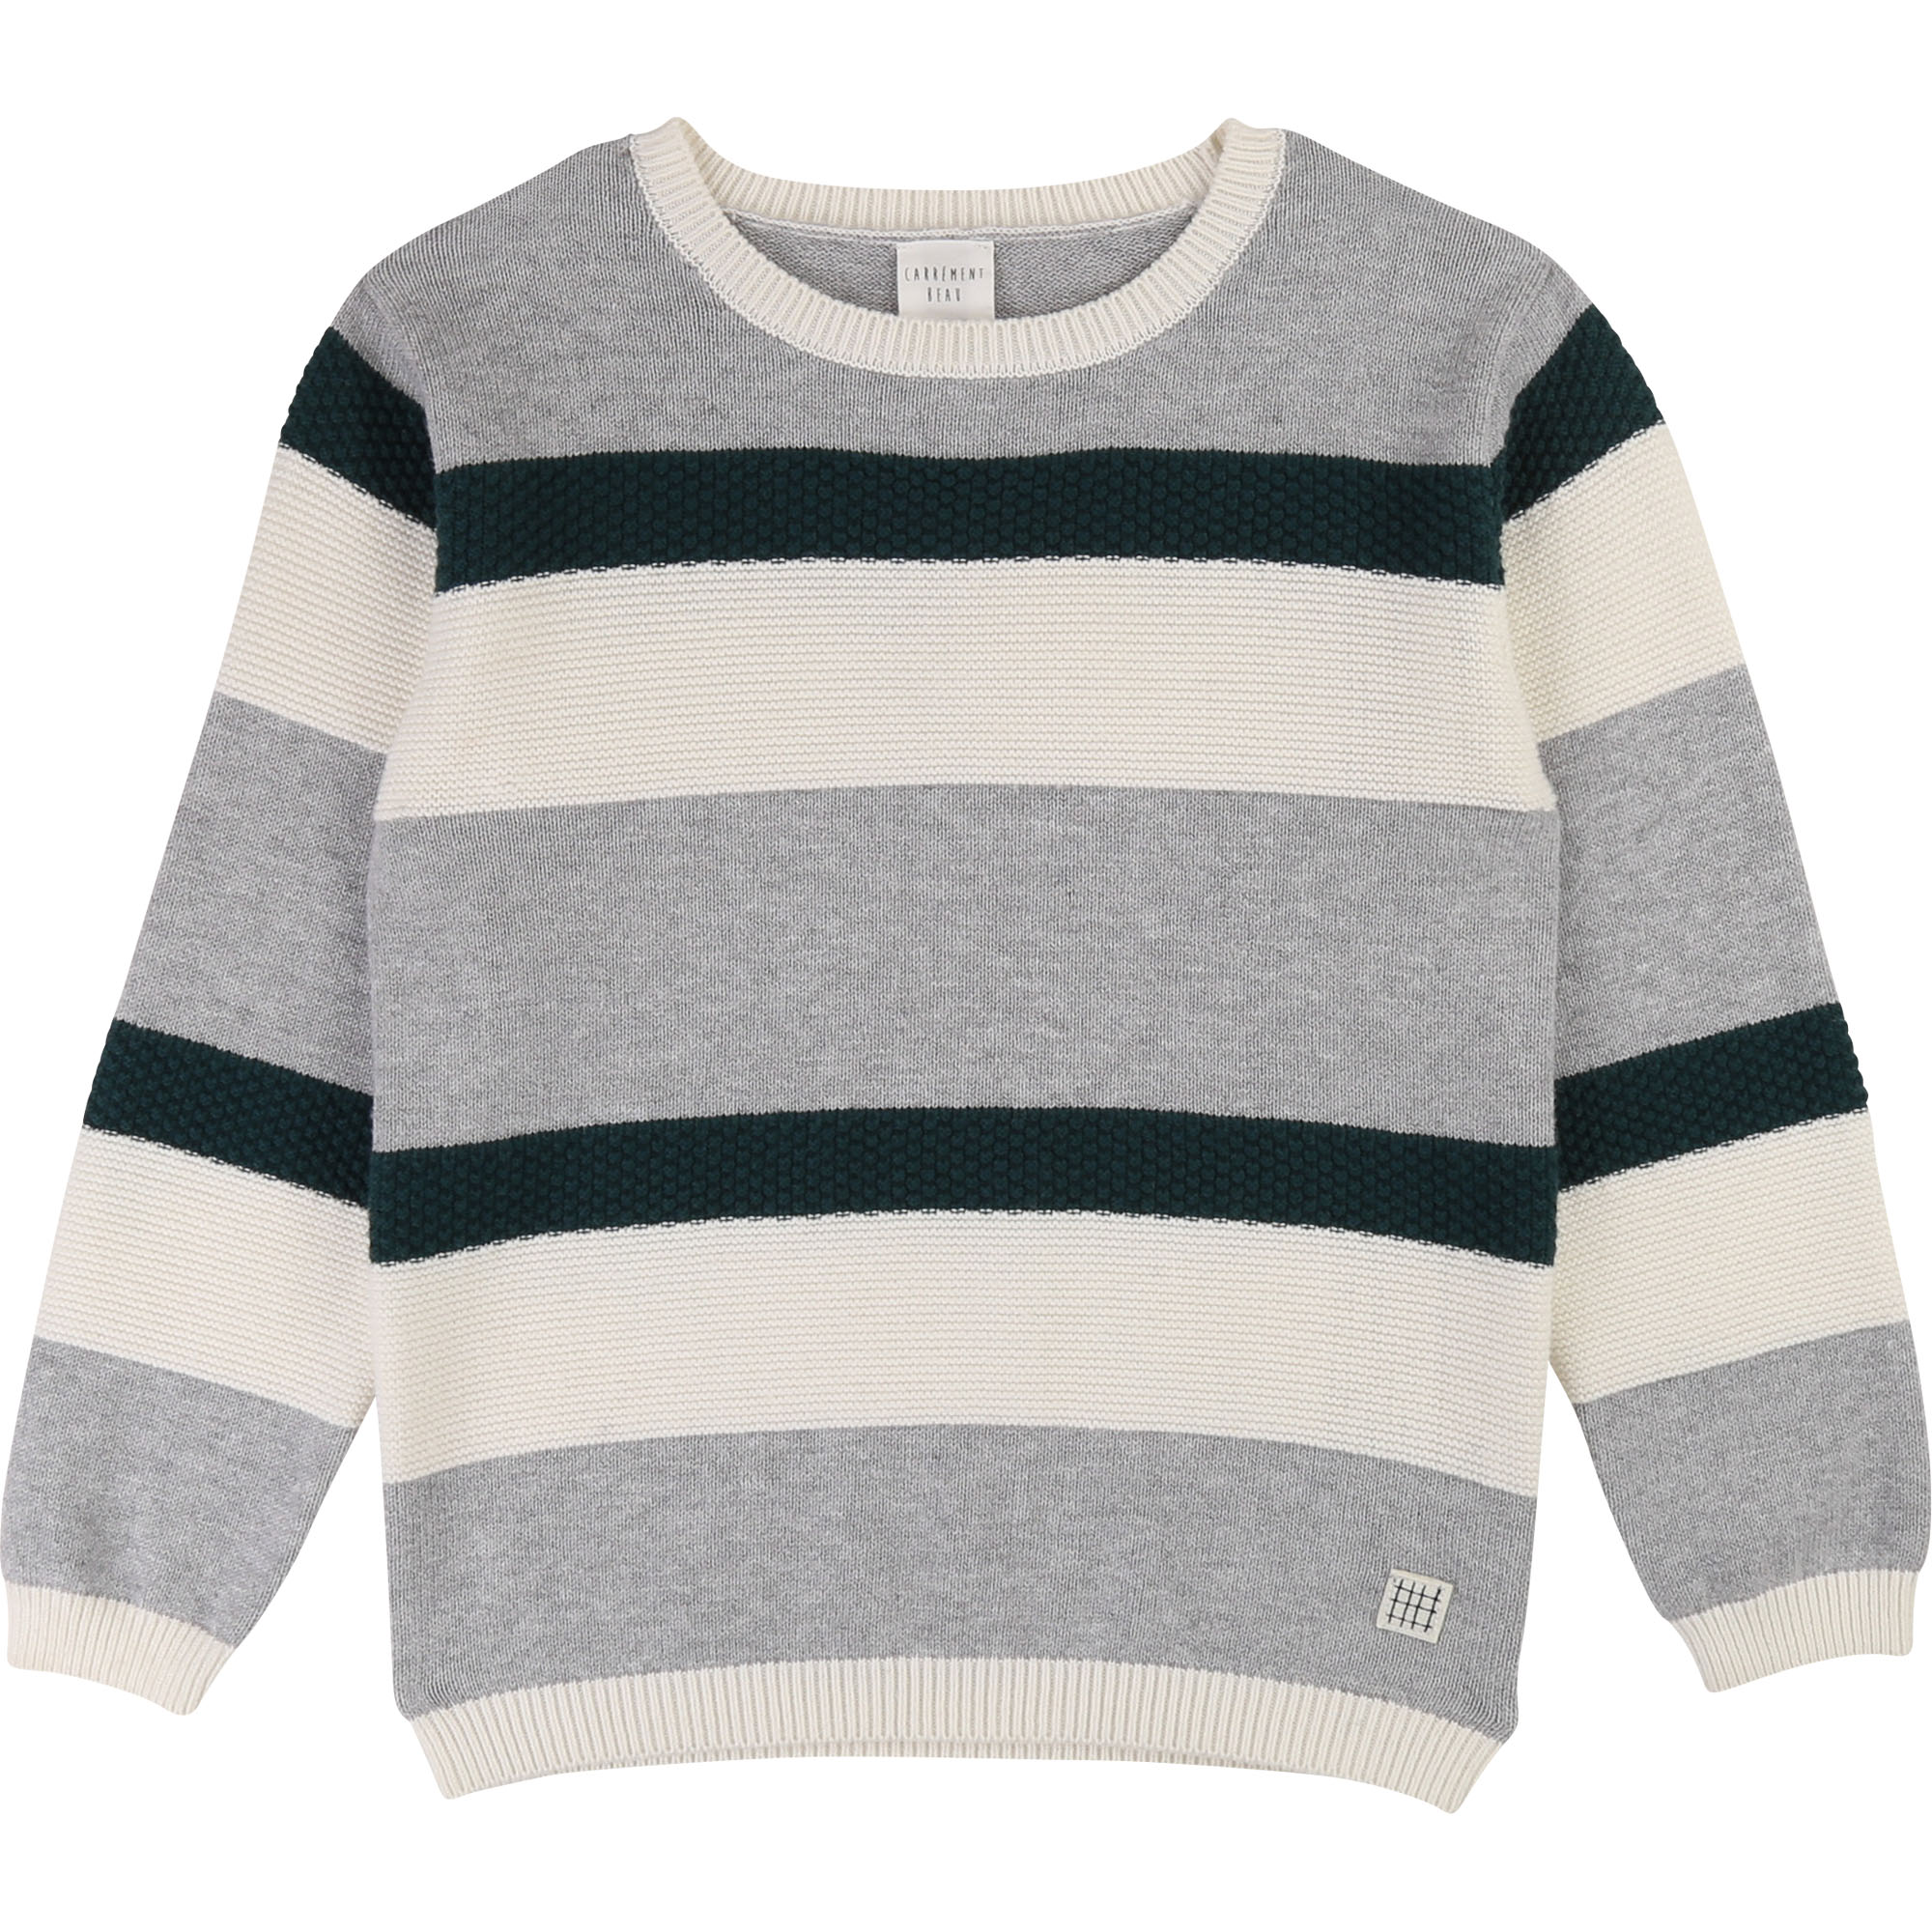 Cotton and wool knit jumper CARREMENT BEAU for BOY